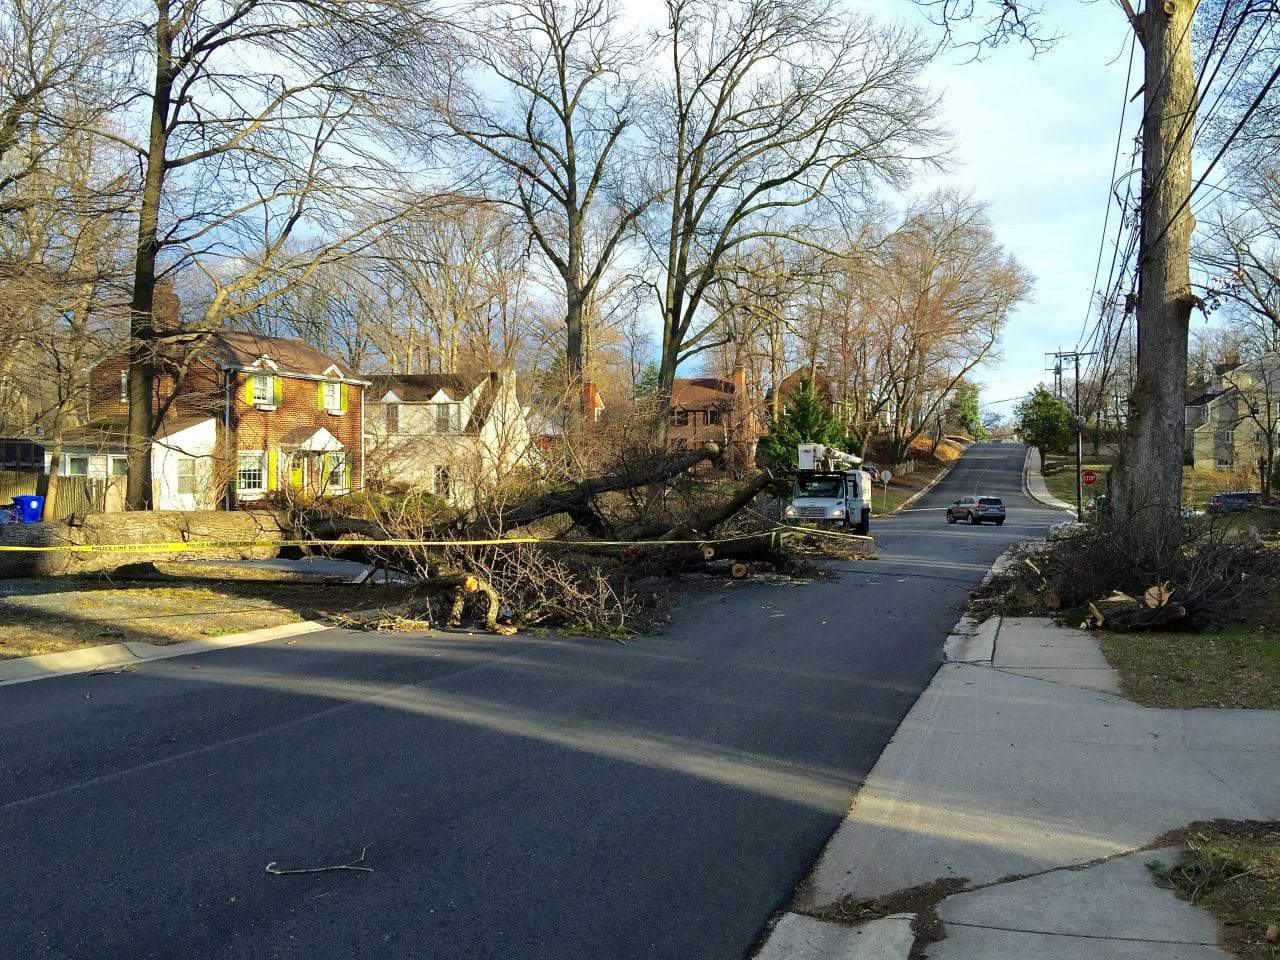 High winds taking down trees, wires around the area - Today's continuing high winds are taking down area trees and, in some cases, power lines, causing damage and disrupting traffic.